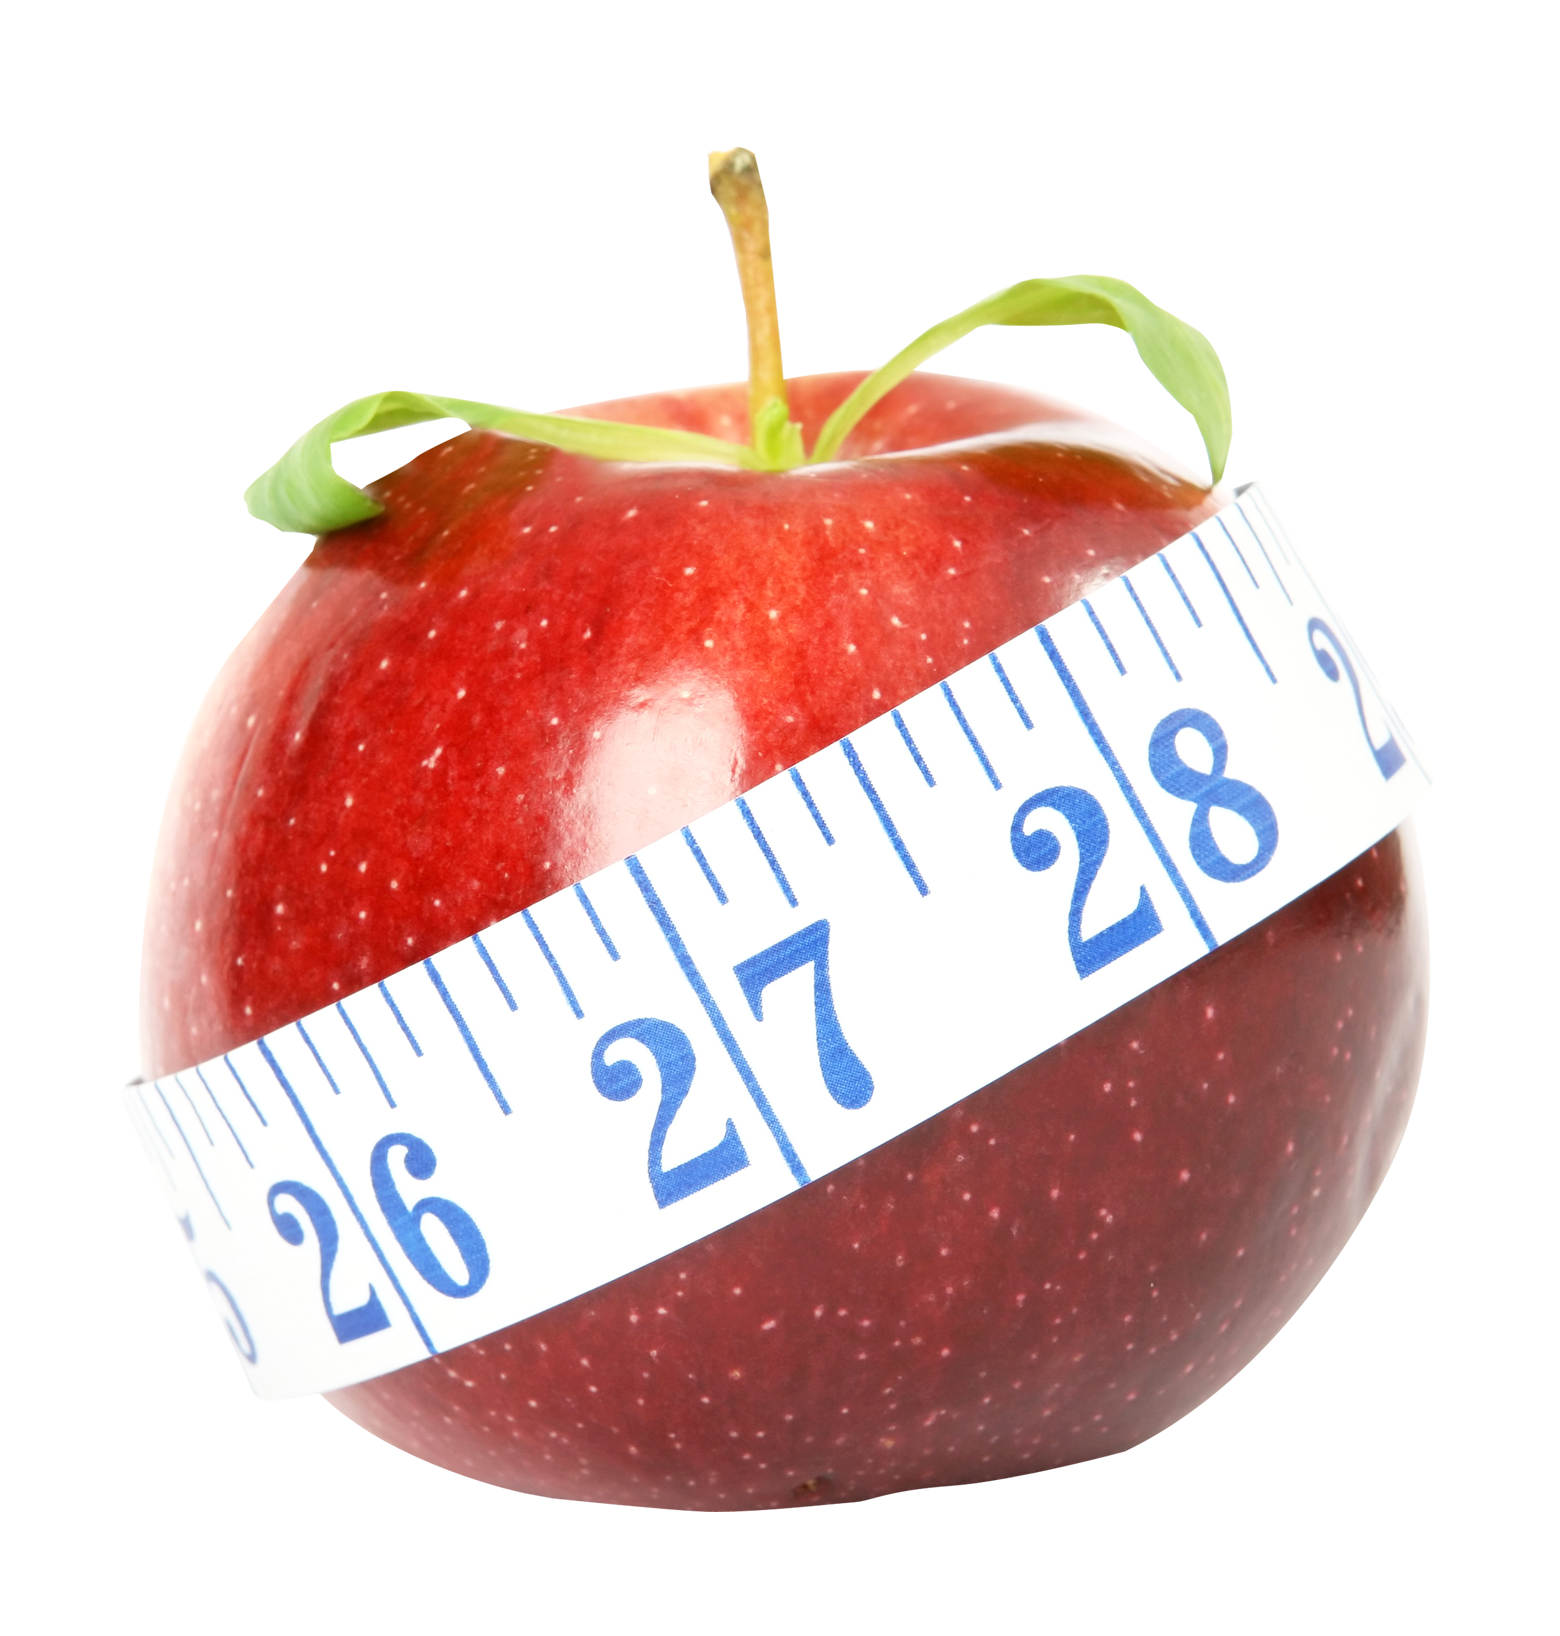 Apple with tape measure clipart svg stock Apple PNG Transparent Image - PngPix svg stock